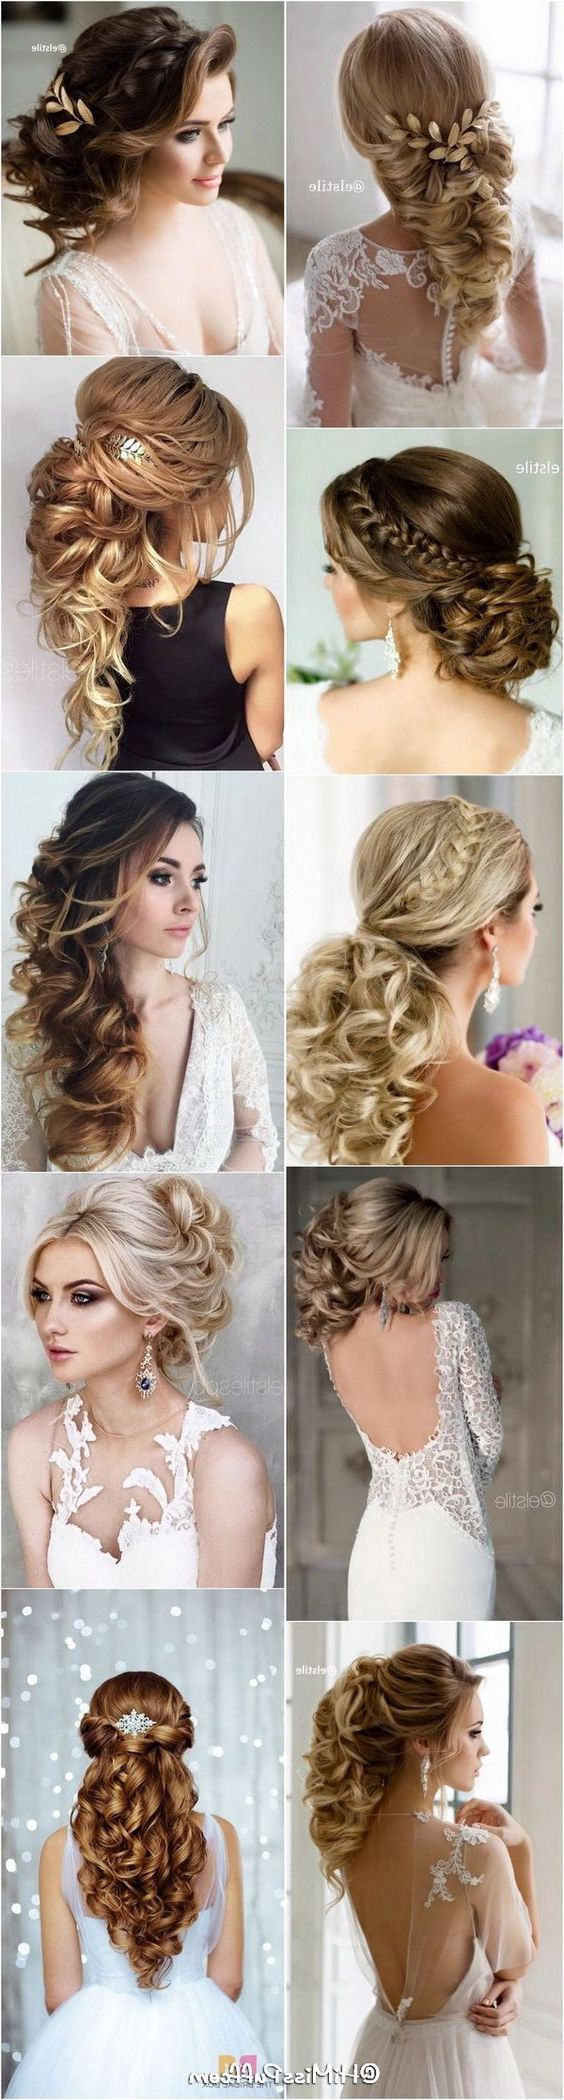 bridal-wedding-hairstyles-for-long-hair-that-will-inspire  Long